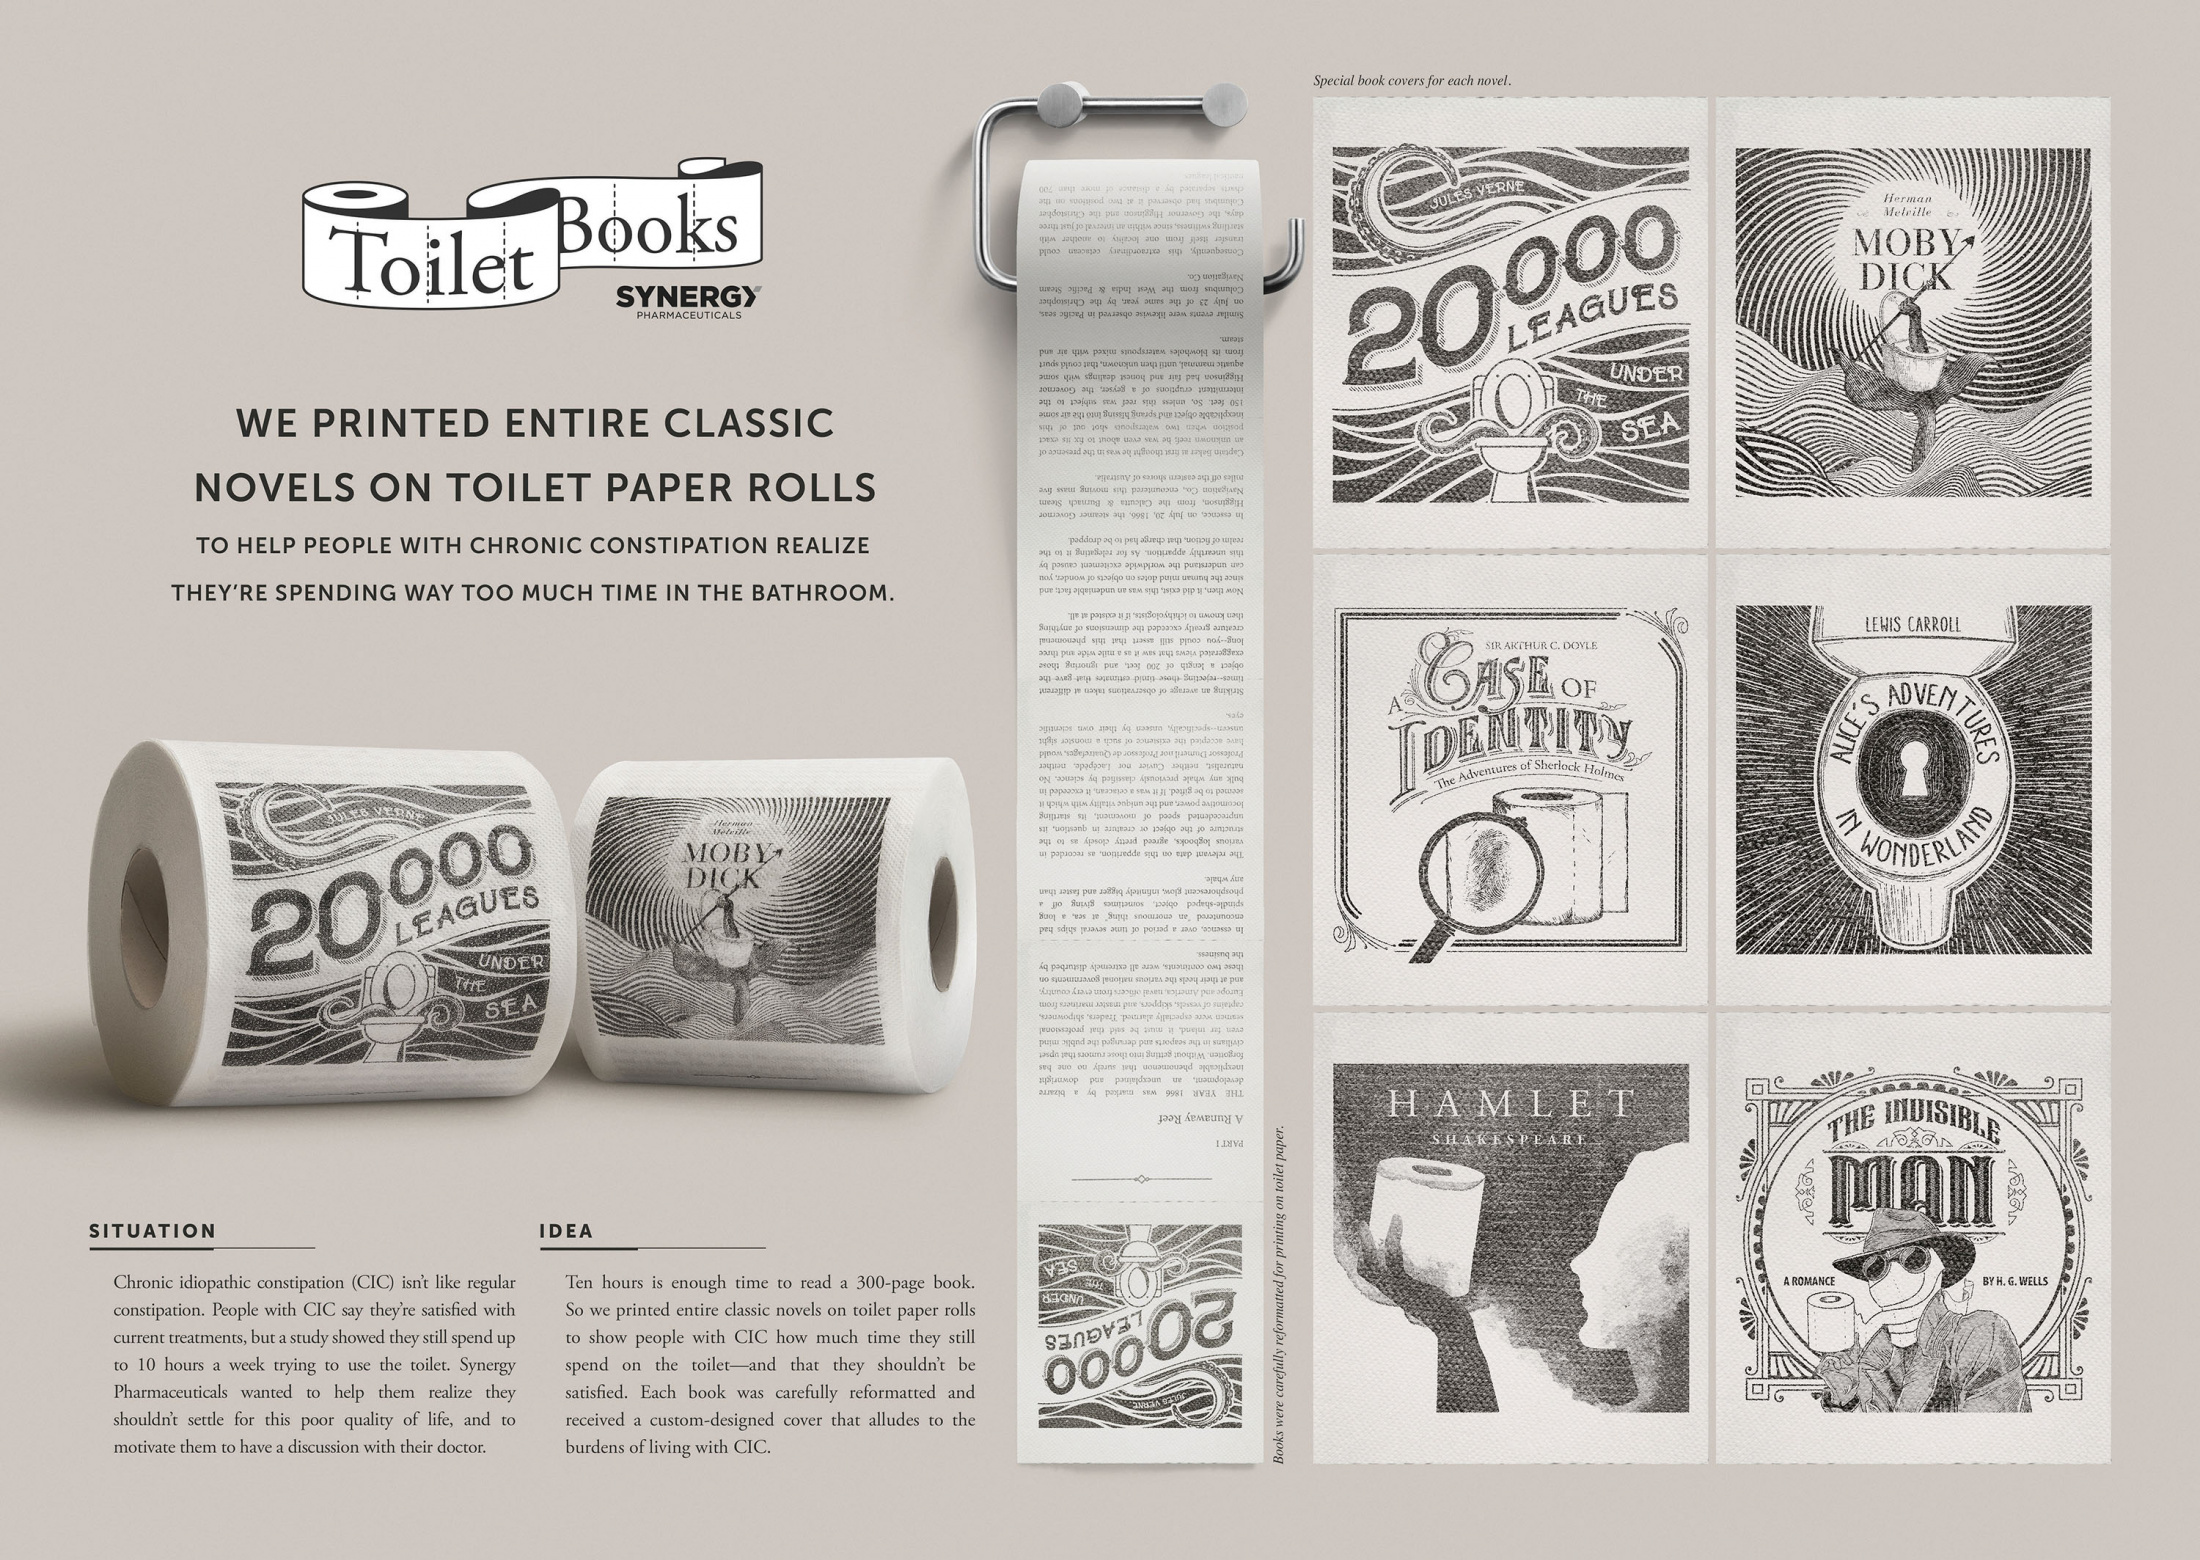 Thumbnail for Toilet Books